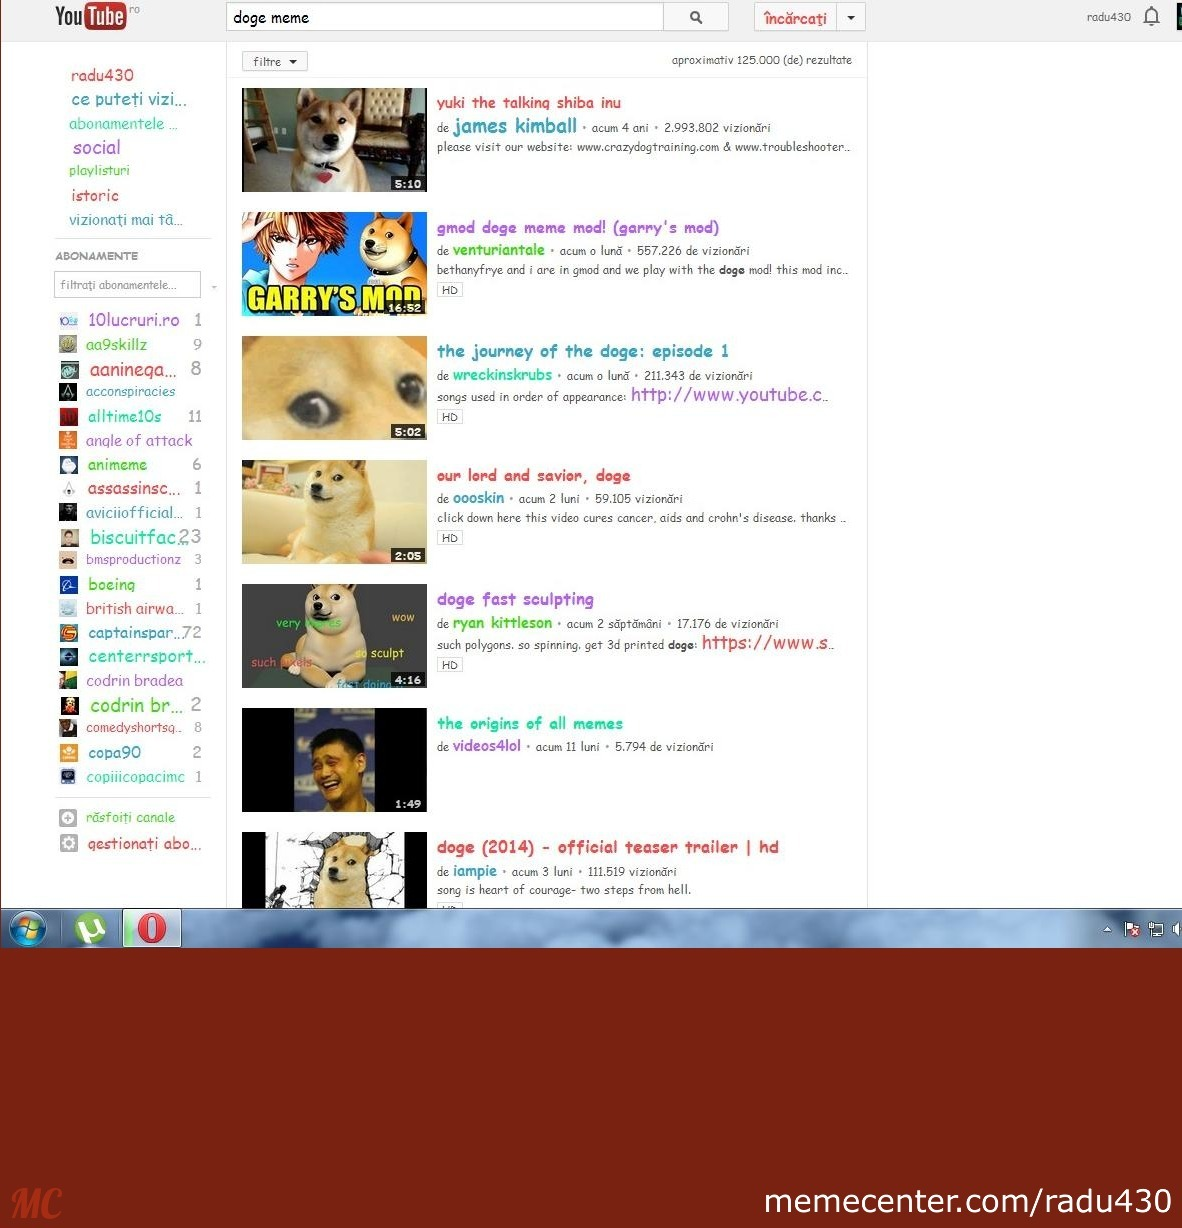 Youtube Easter Egg Search For Doge Meme On Google By Radu430